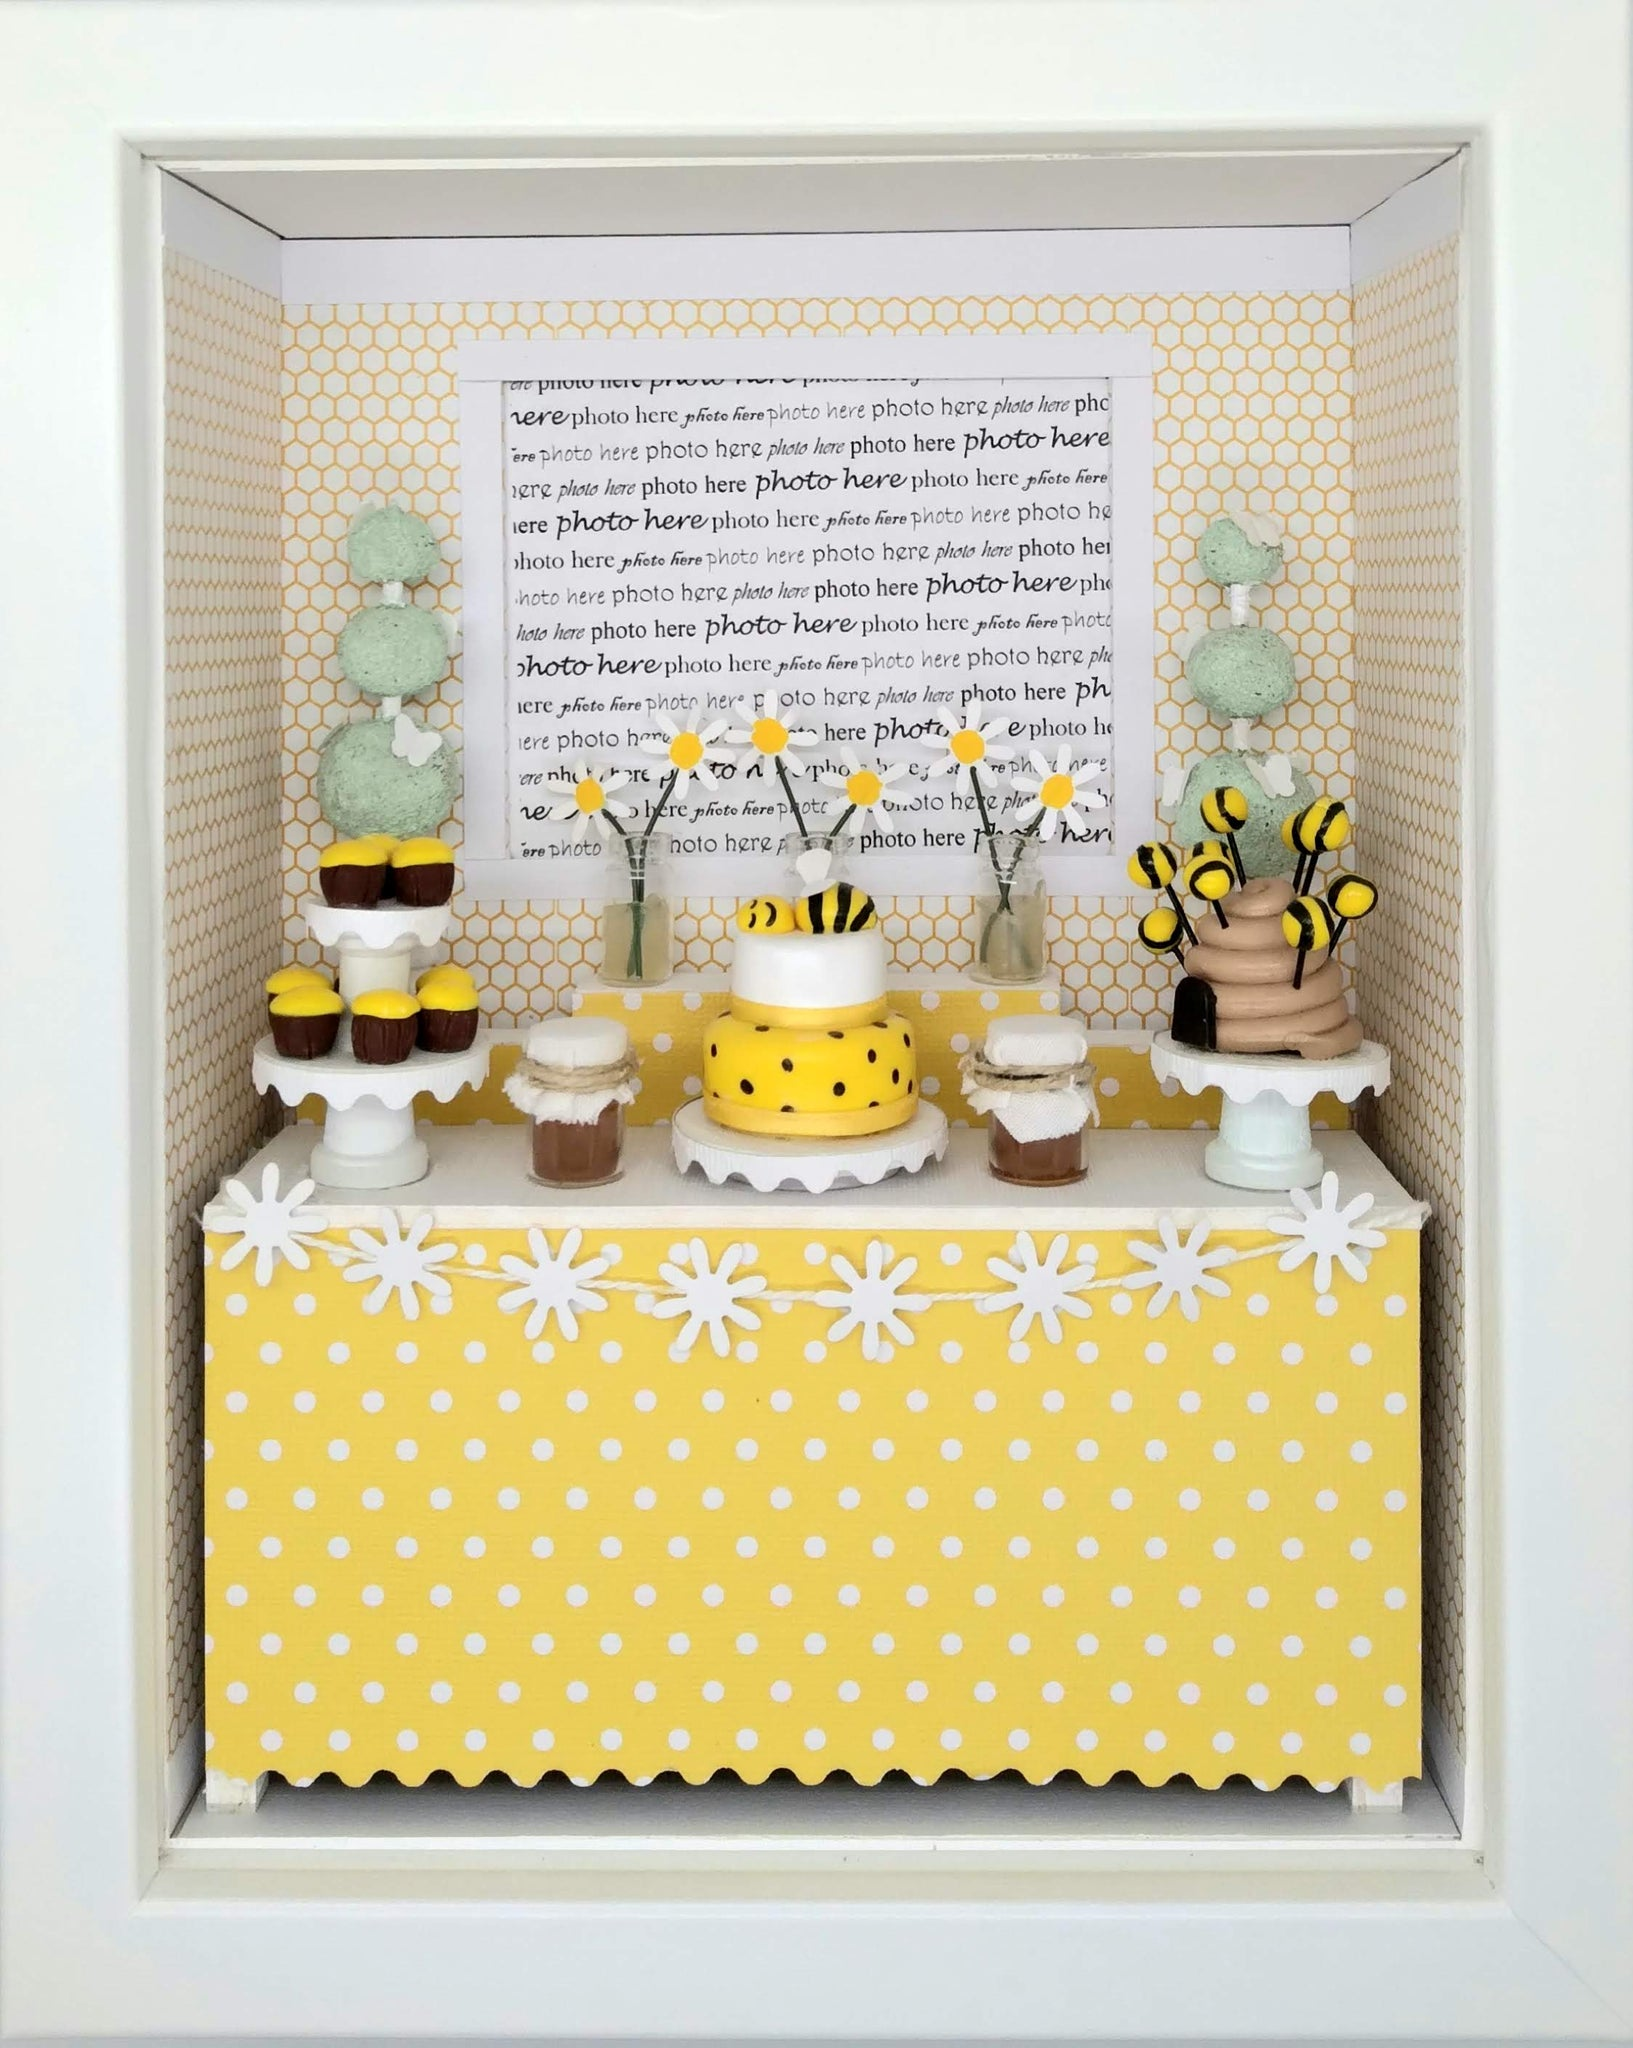 Shadowbox Photo Frame - Baby Bumble Bee